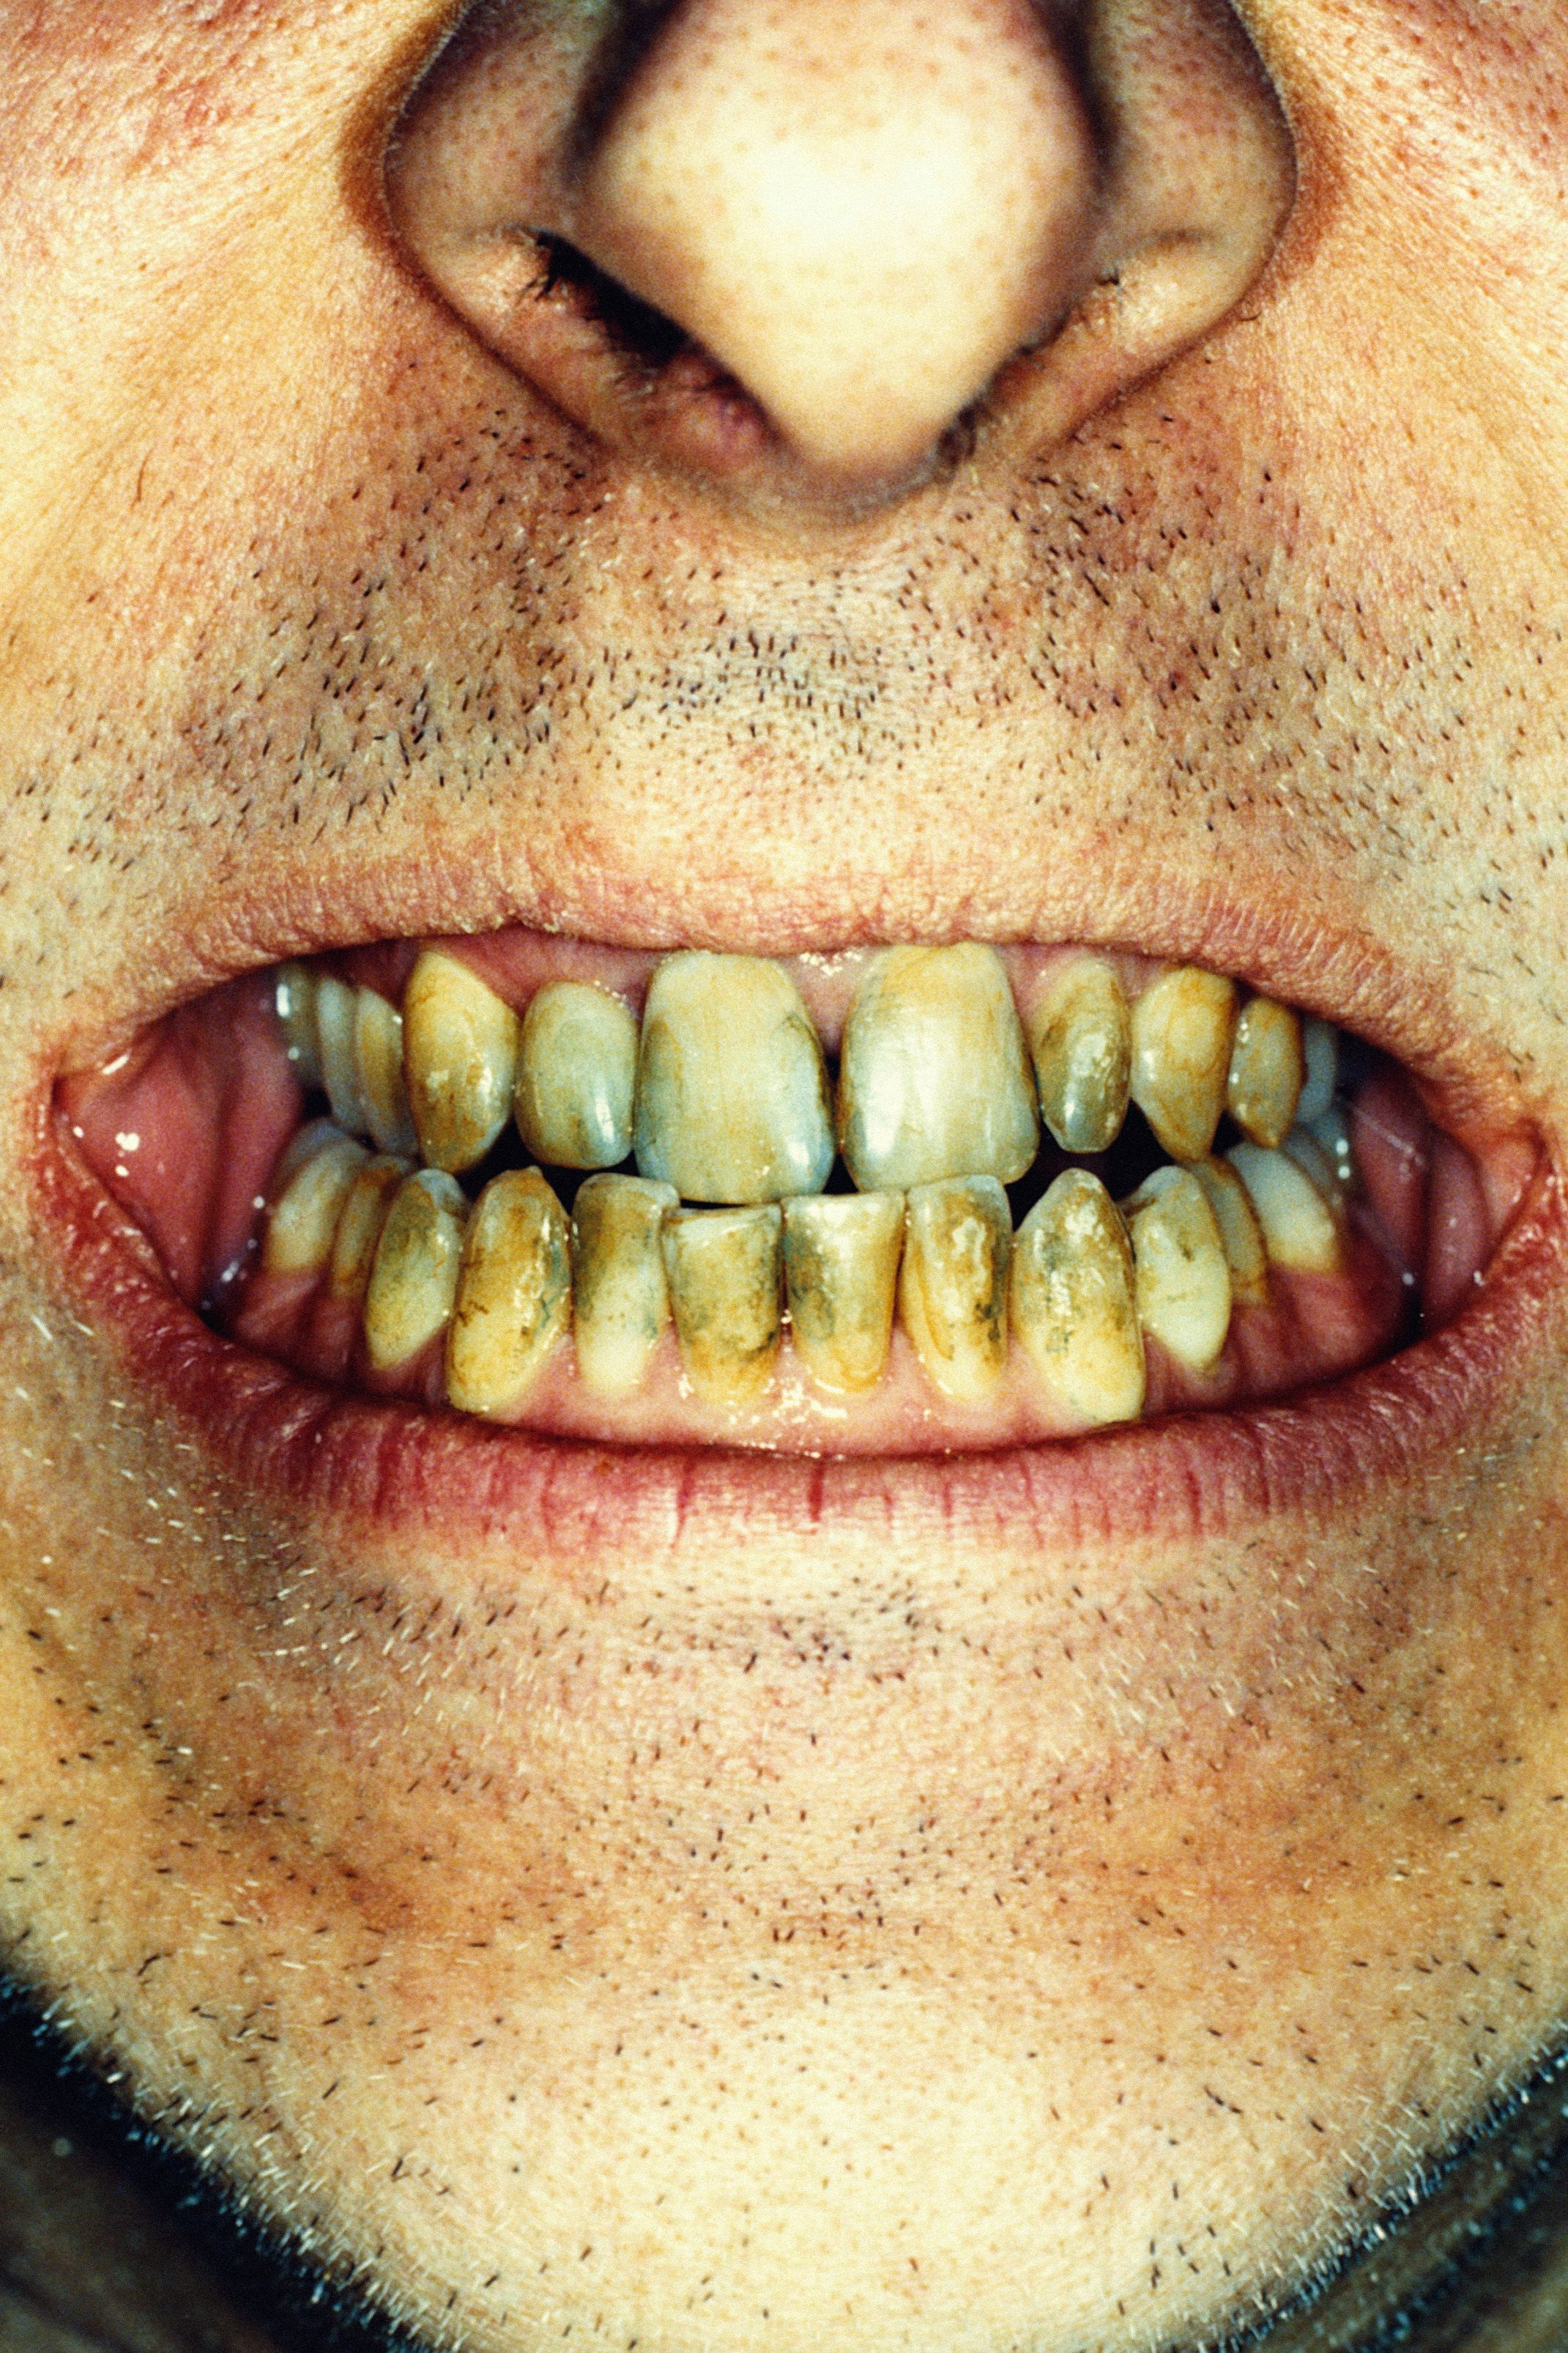 Woman with rotten teeth